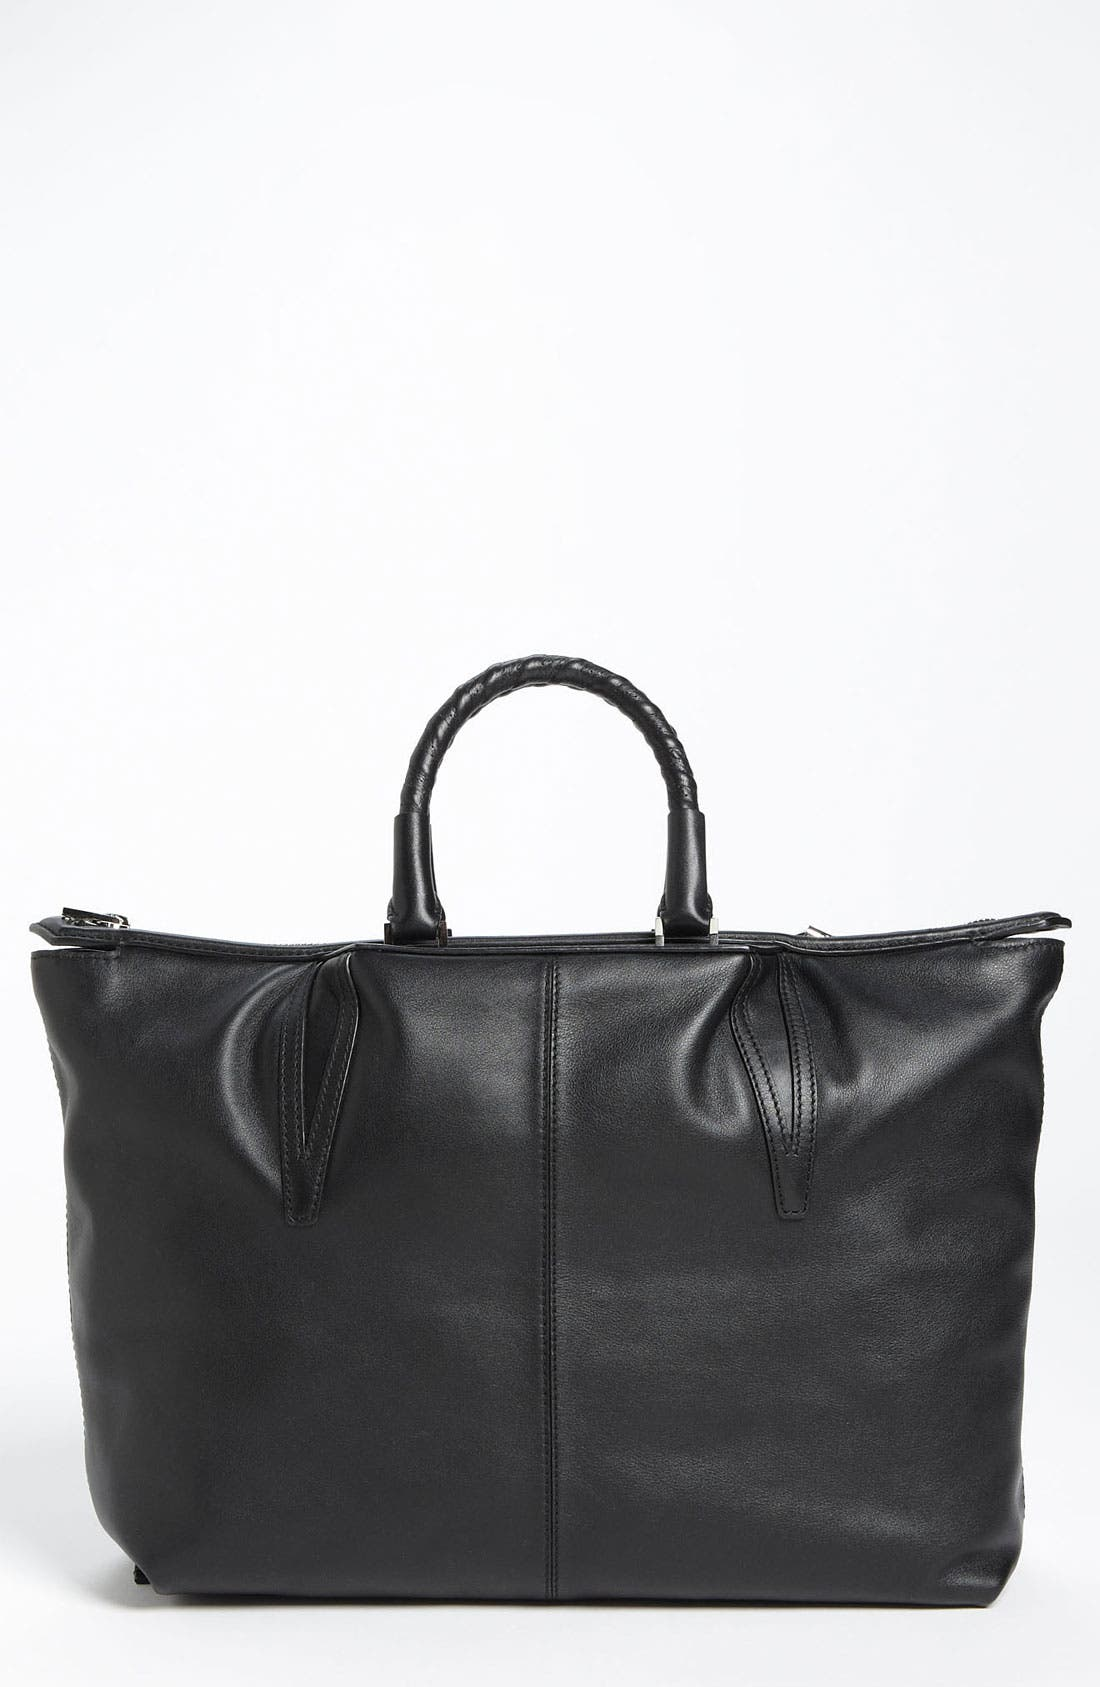 Alternate Image 1 Selected - Alexander Wang 'Liner - Small' Leather Satchel